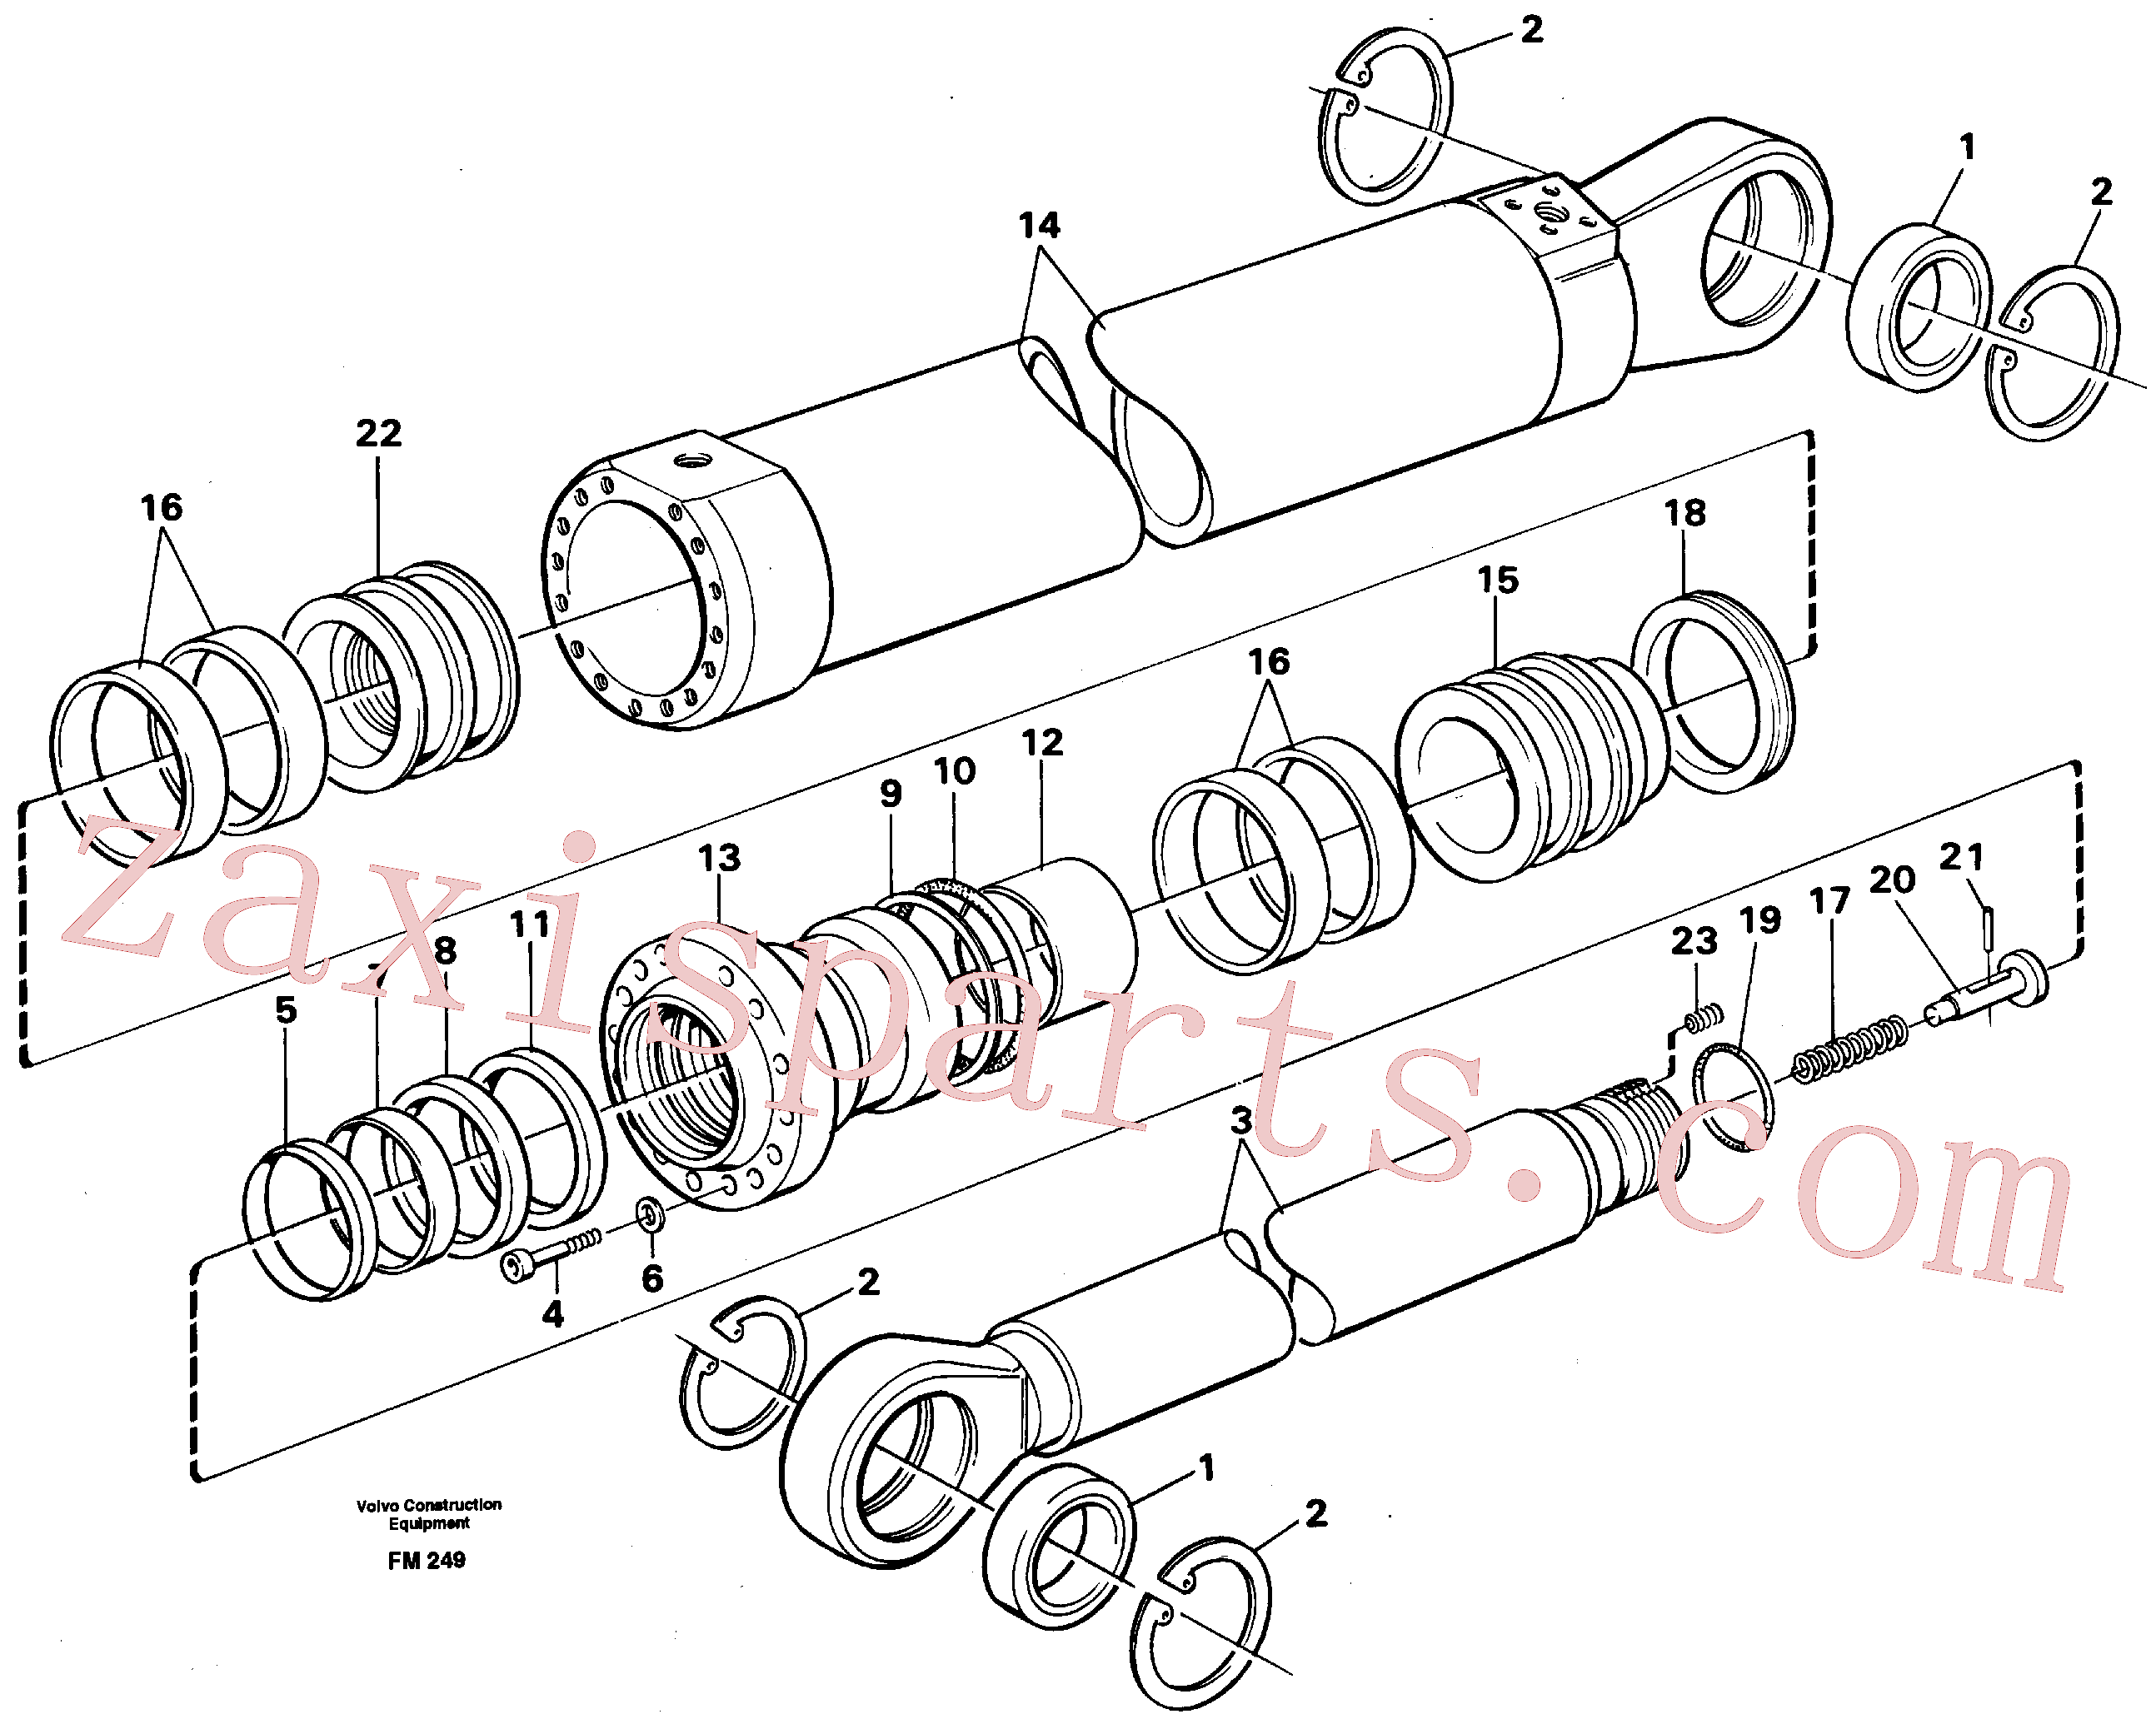 VOE14210876 for Volvo Dipper arm cylinder, material handling equipment(FM249 assembly)